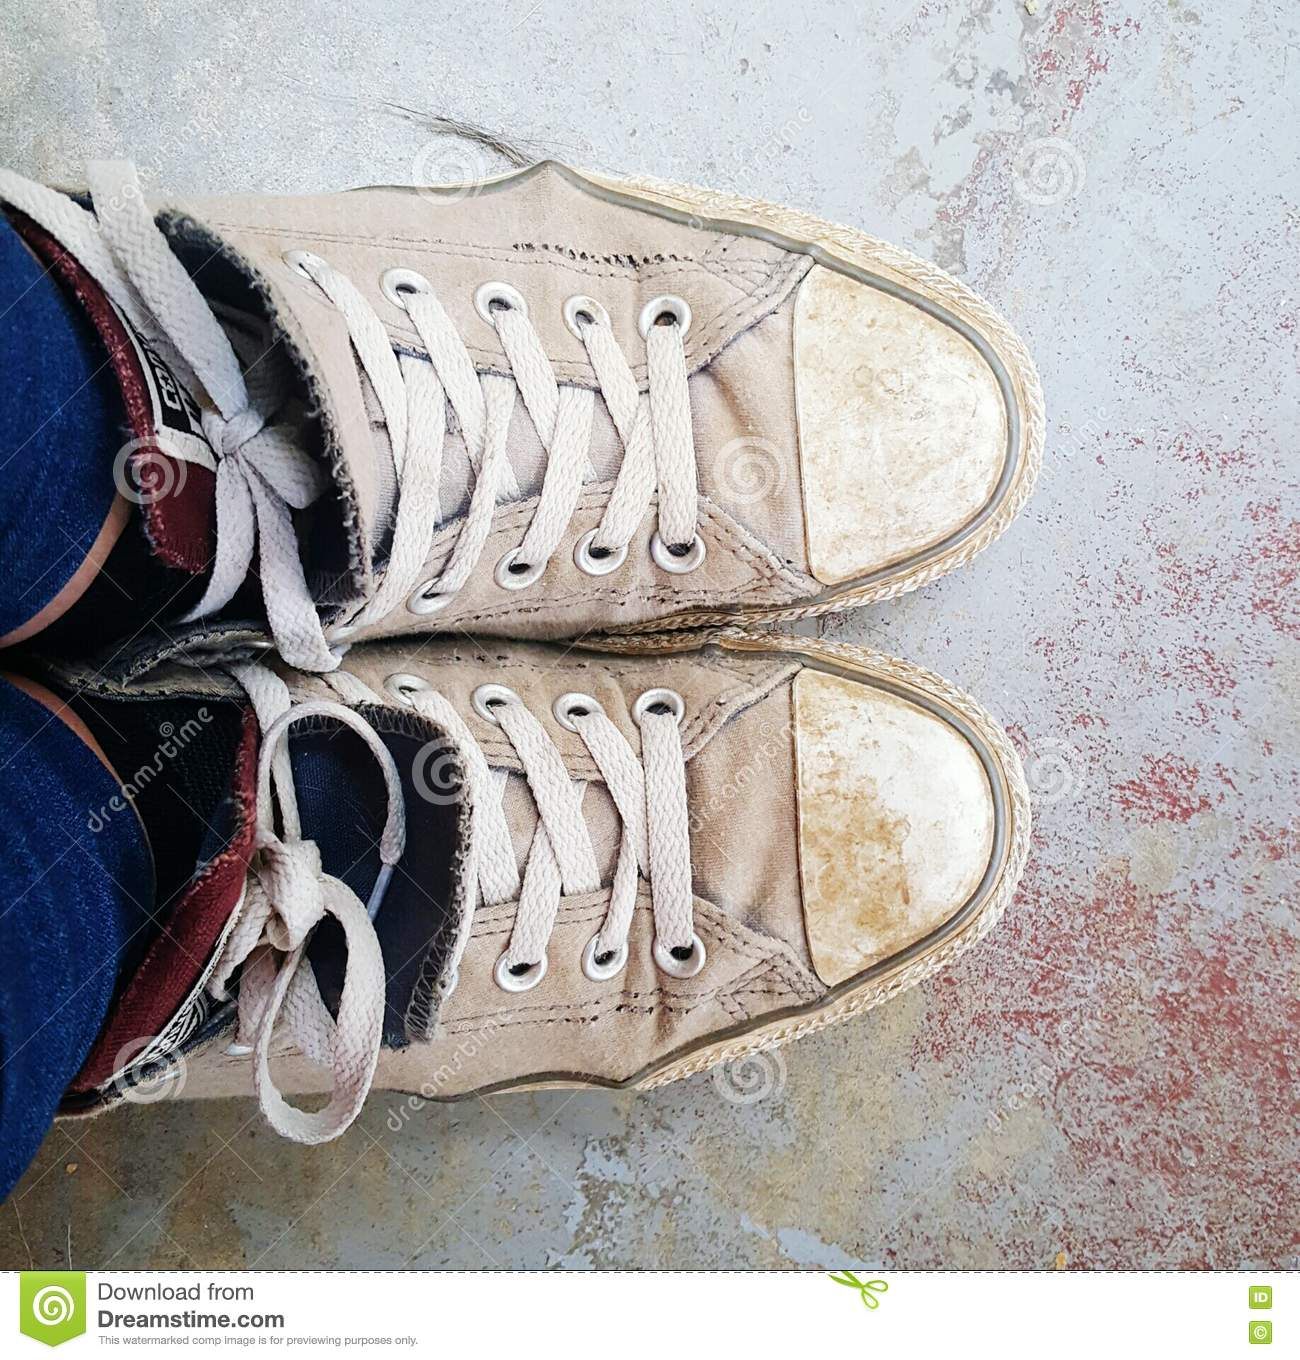 Dirty converse style lace up sneakers in grey on messy floor. Ripped and  broken fc290c5d3